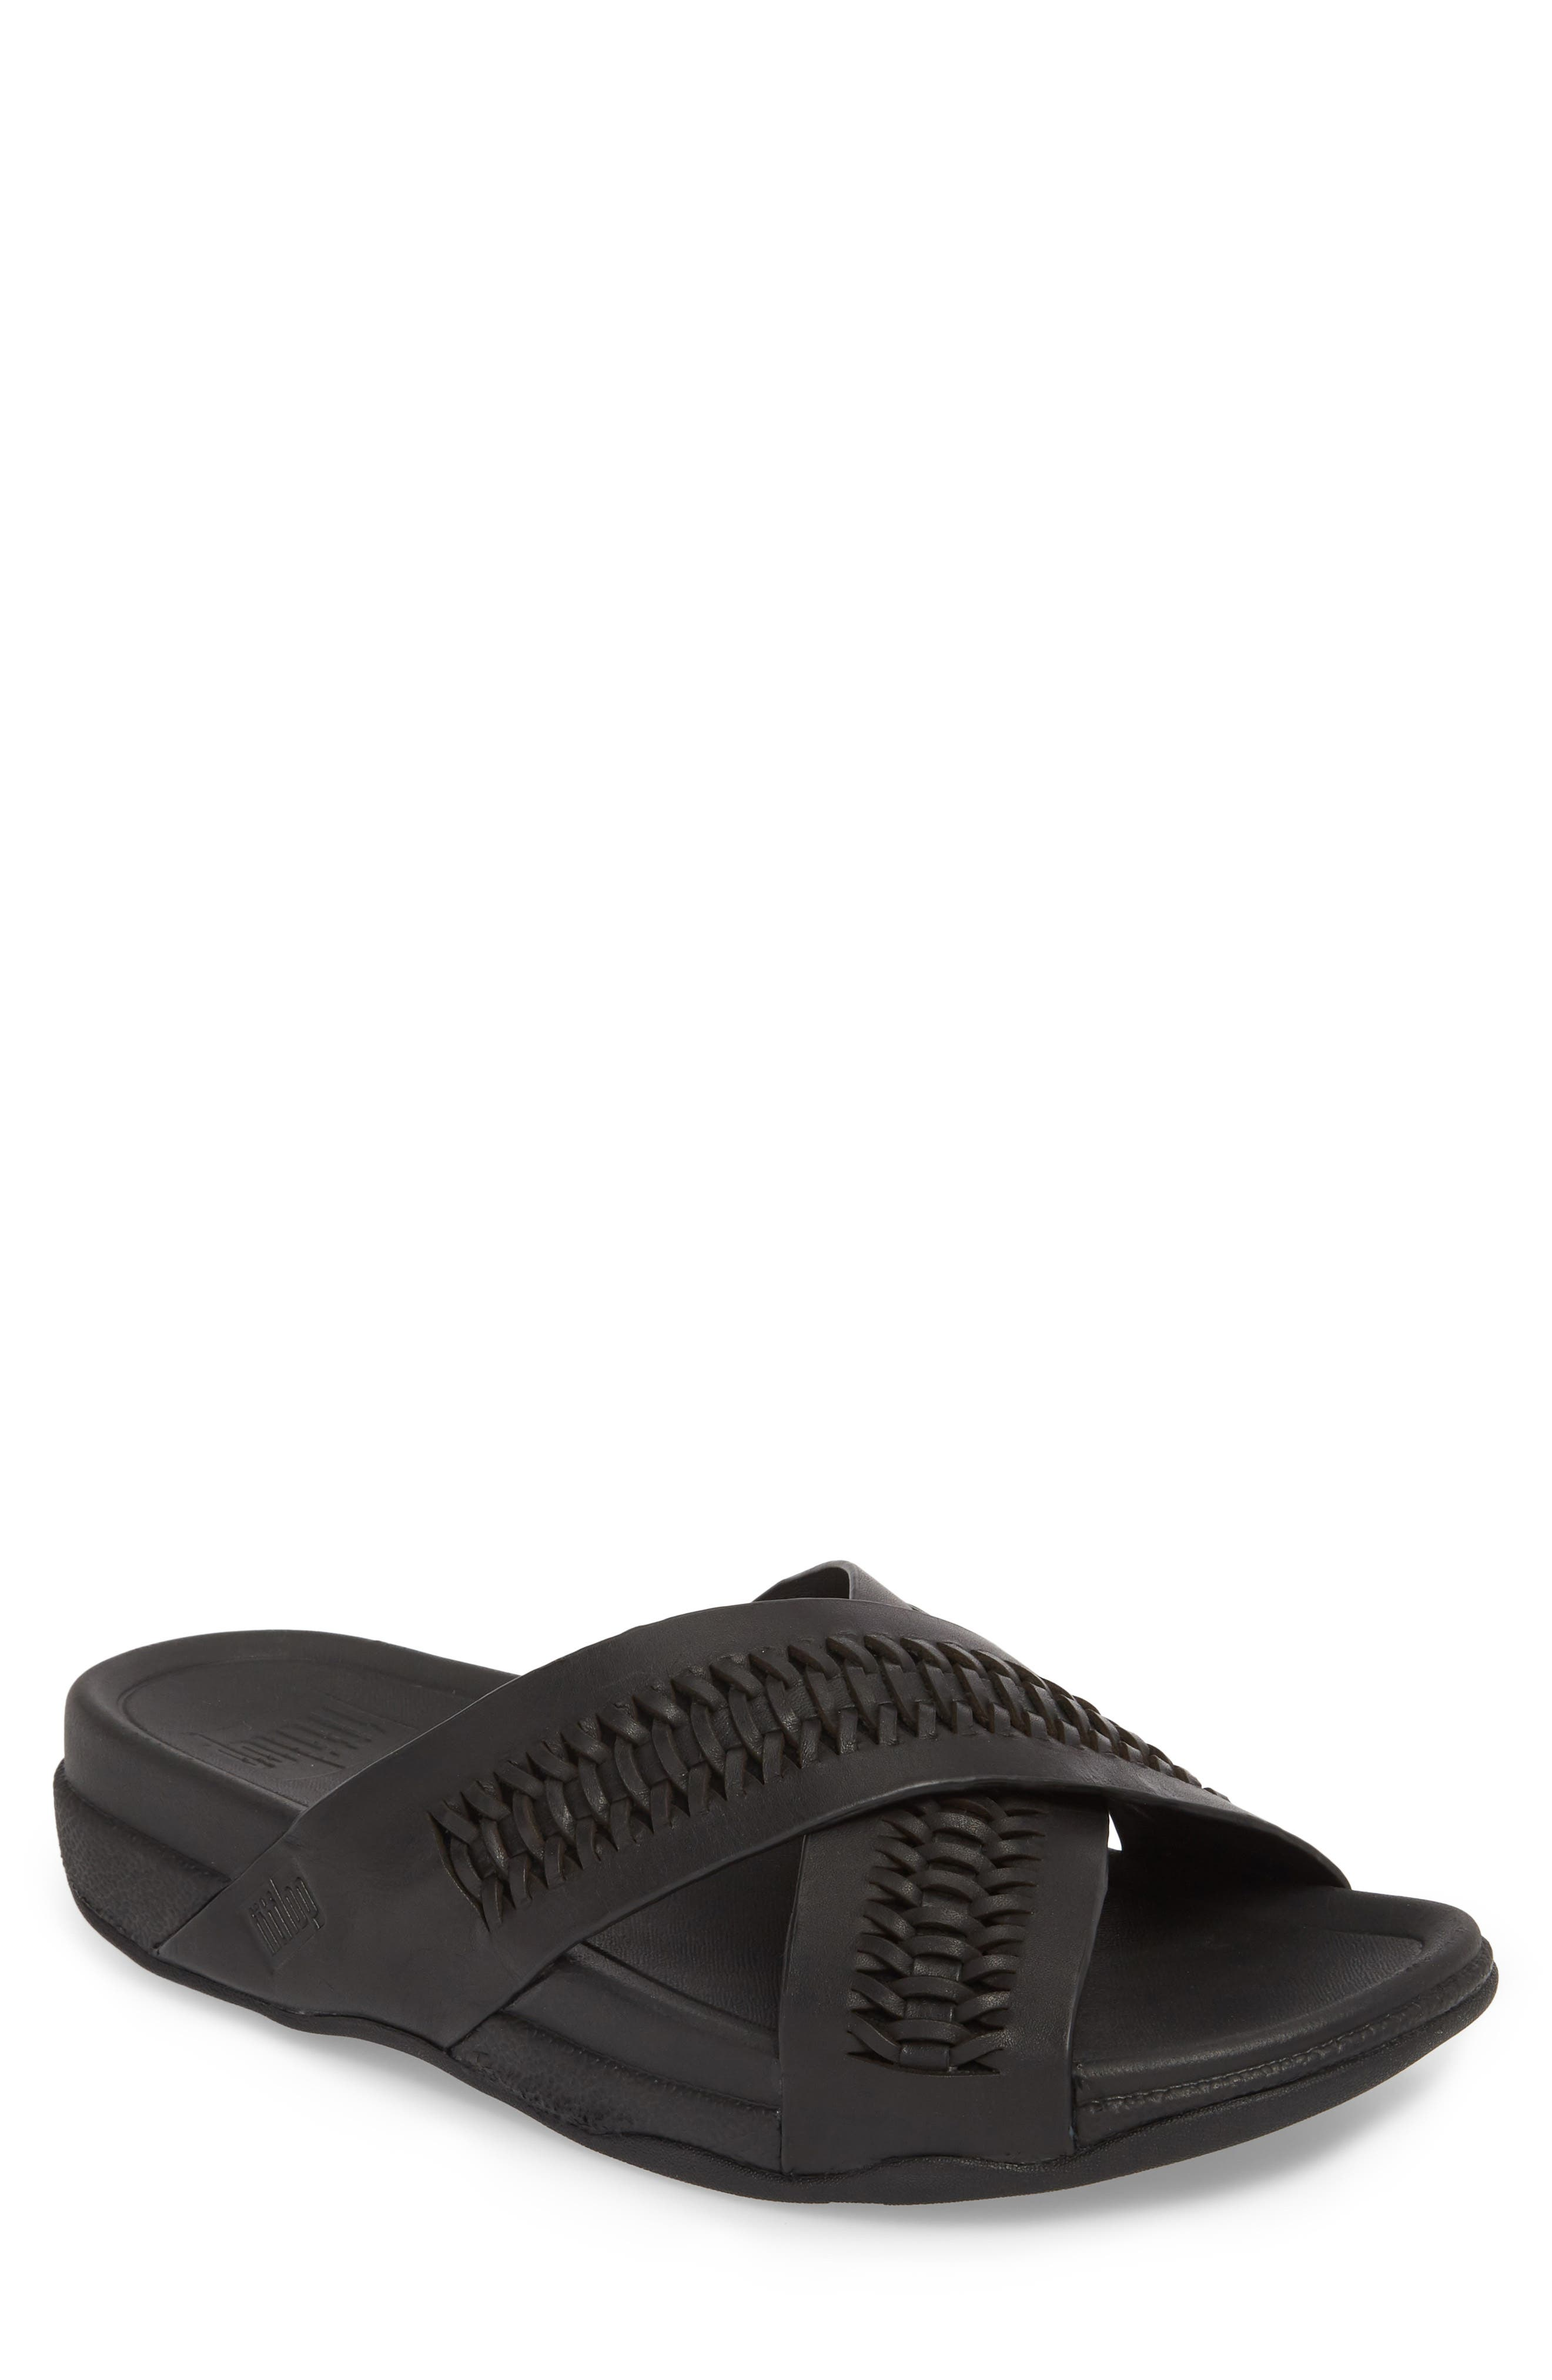 Surfer Slide Sandal,                             Main thumbnail 1, color,                             Black